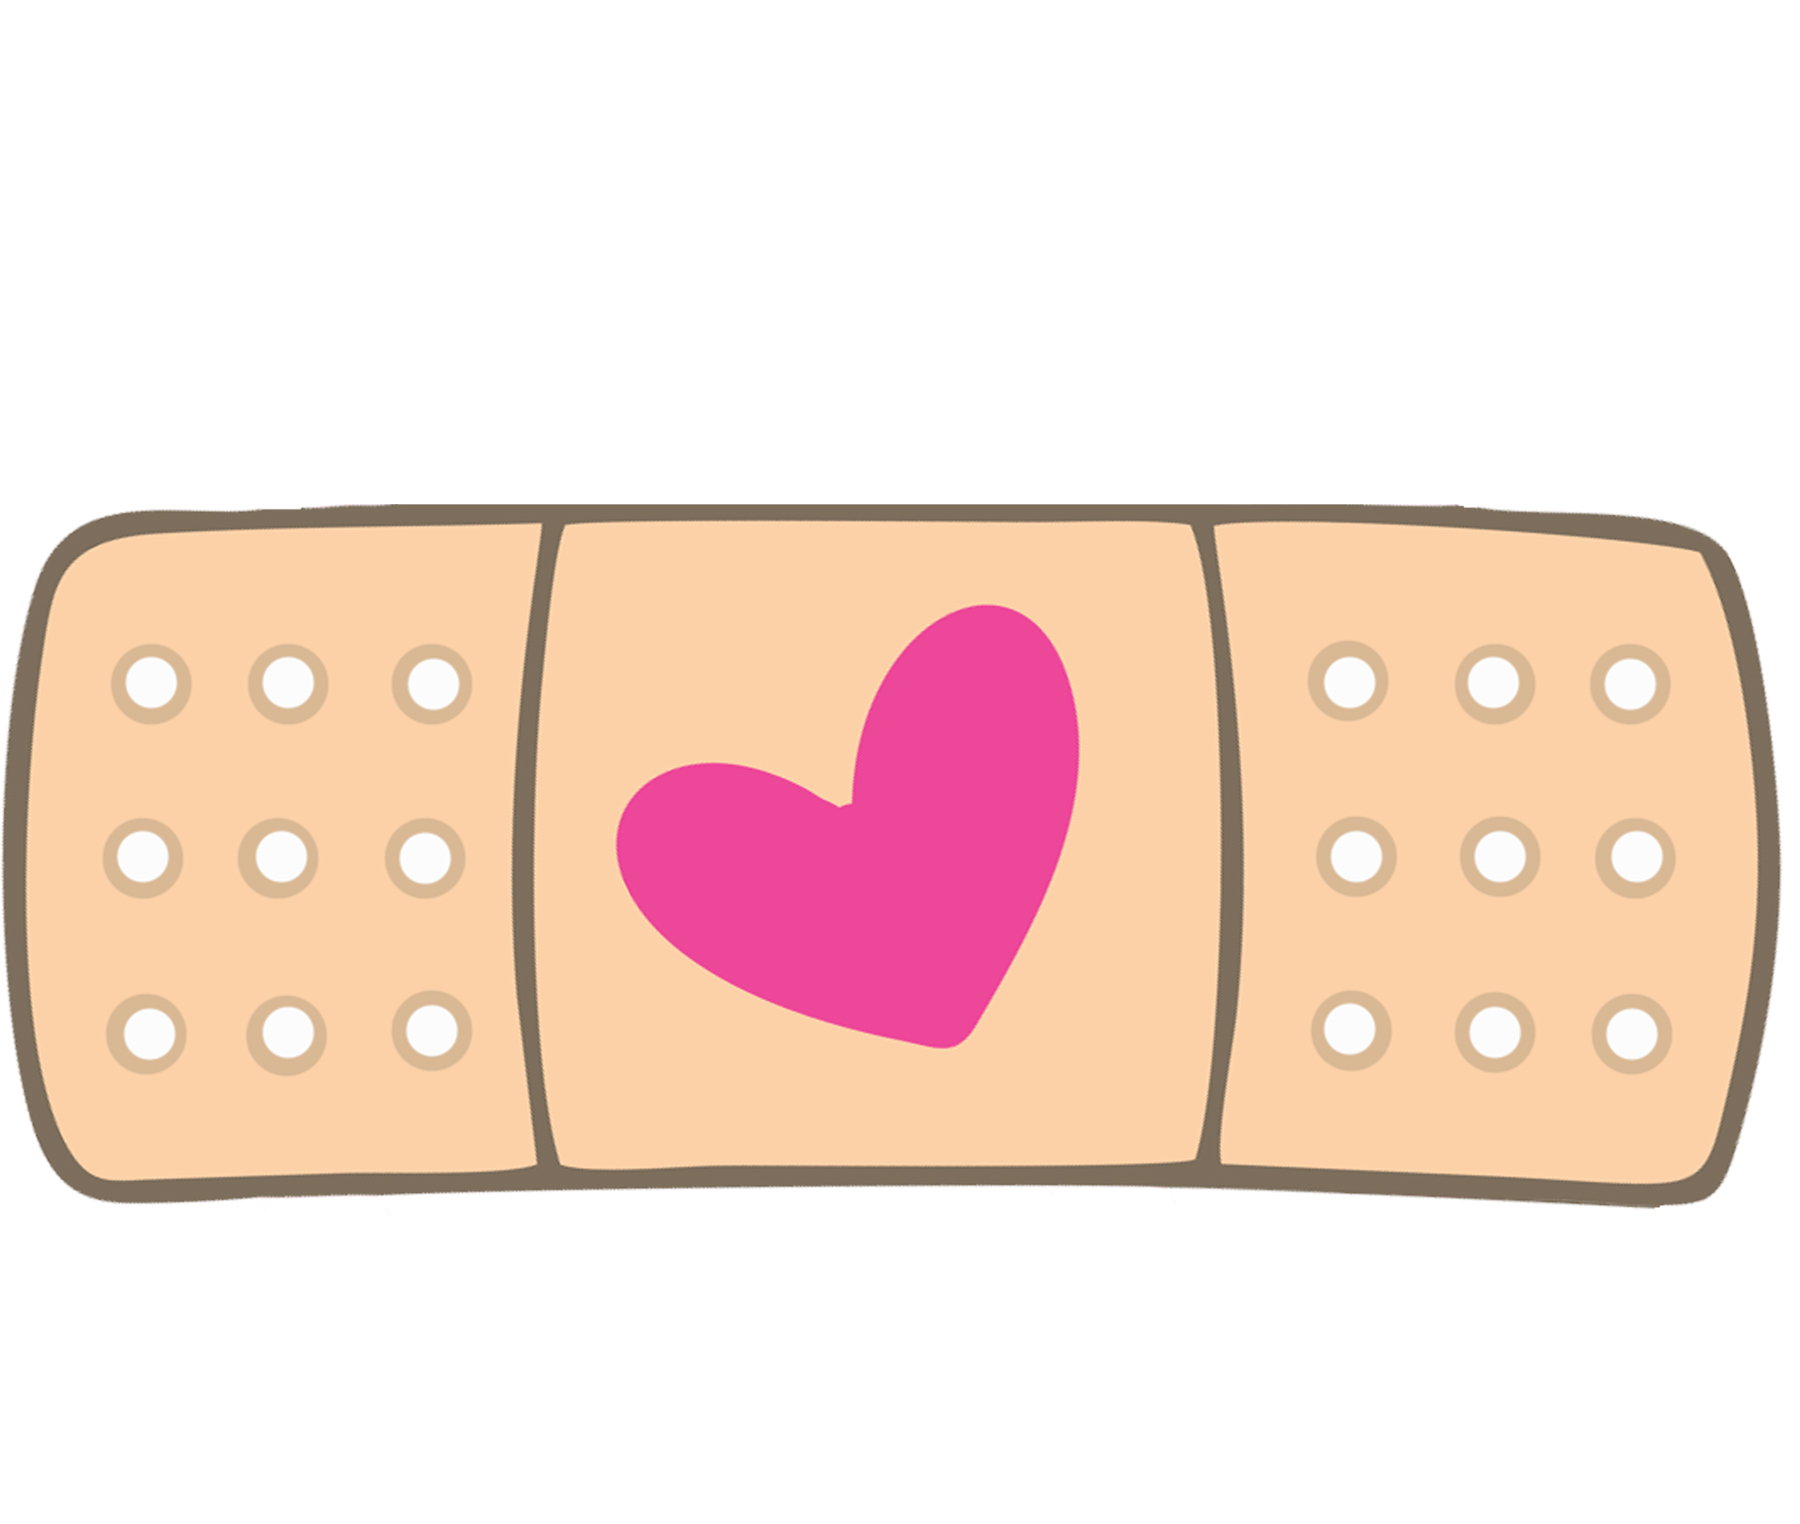 Bandage clipart #5, Download drawings